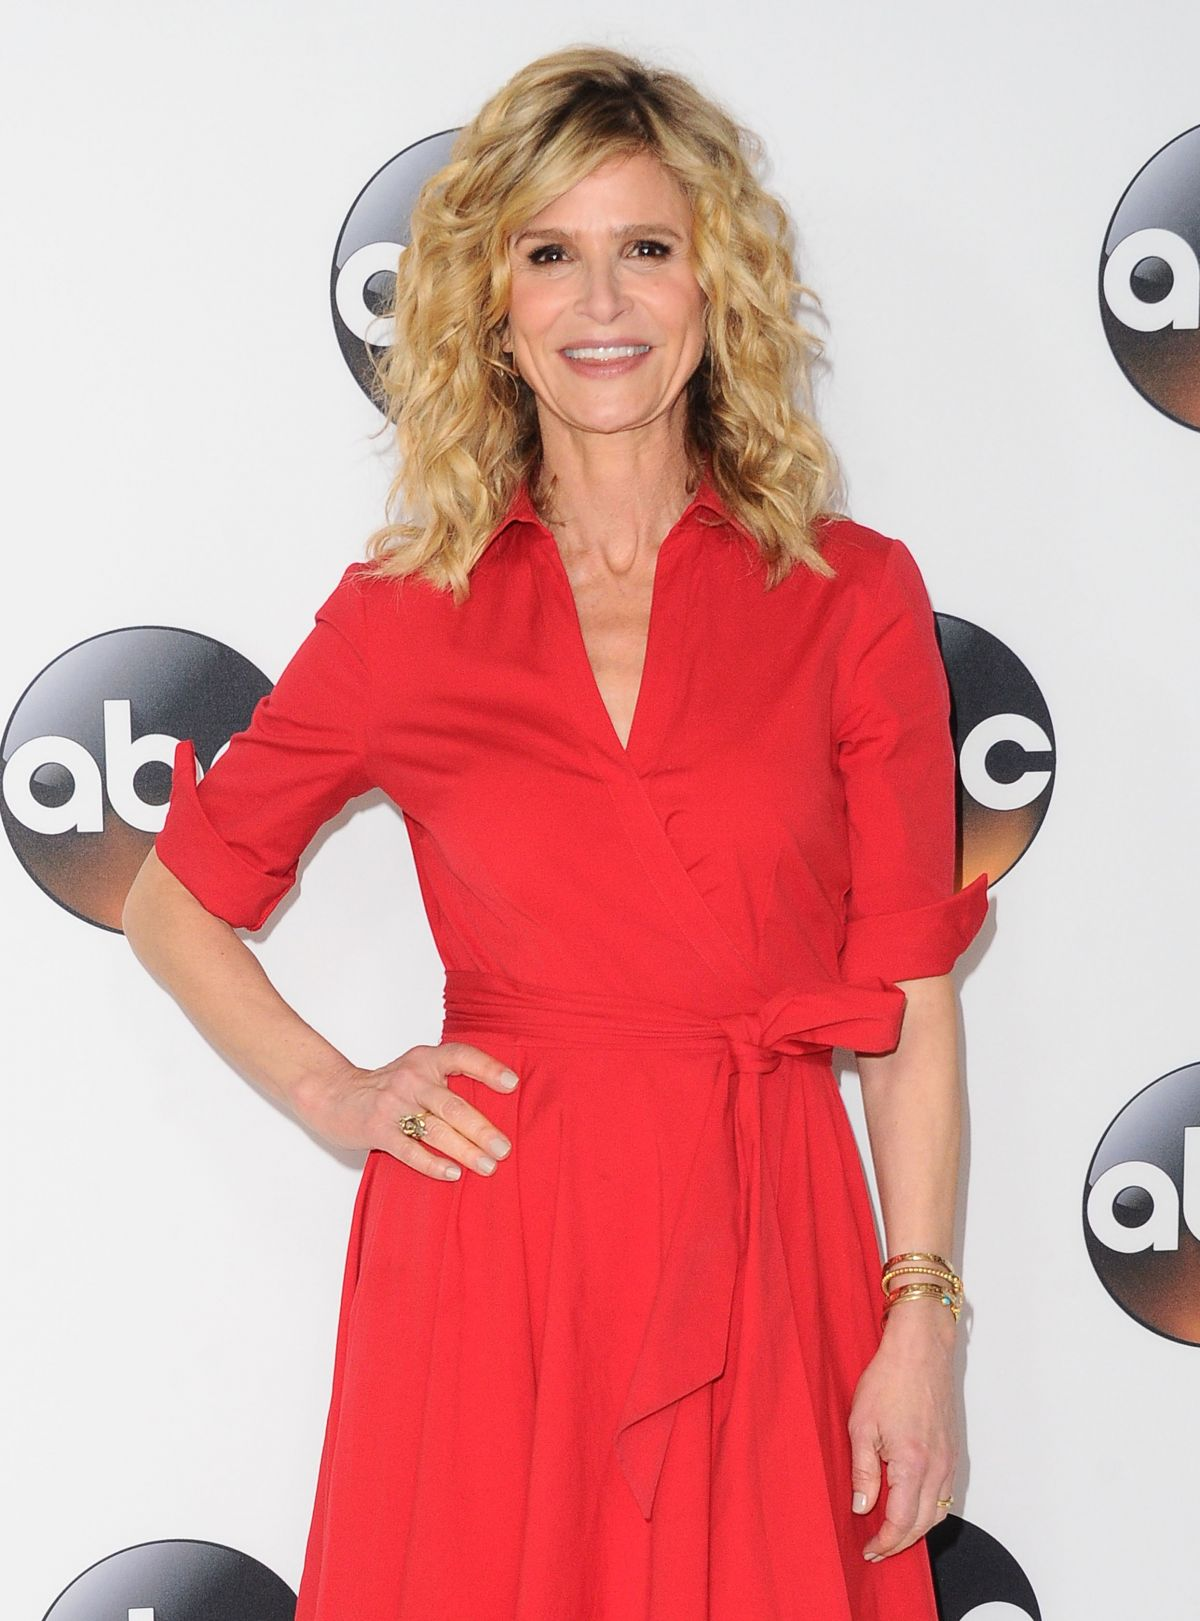 KYRA SEDGWICK at Disney/ABC TCA Summer Tour in Beverly Hills 08/06/2017